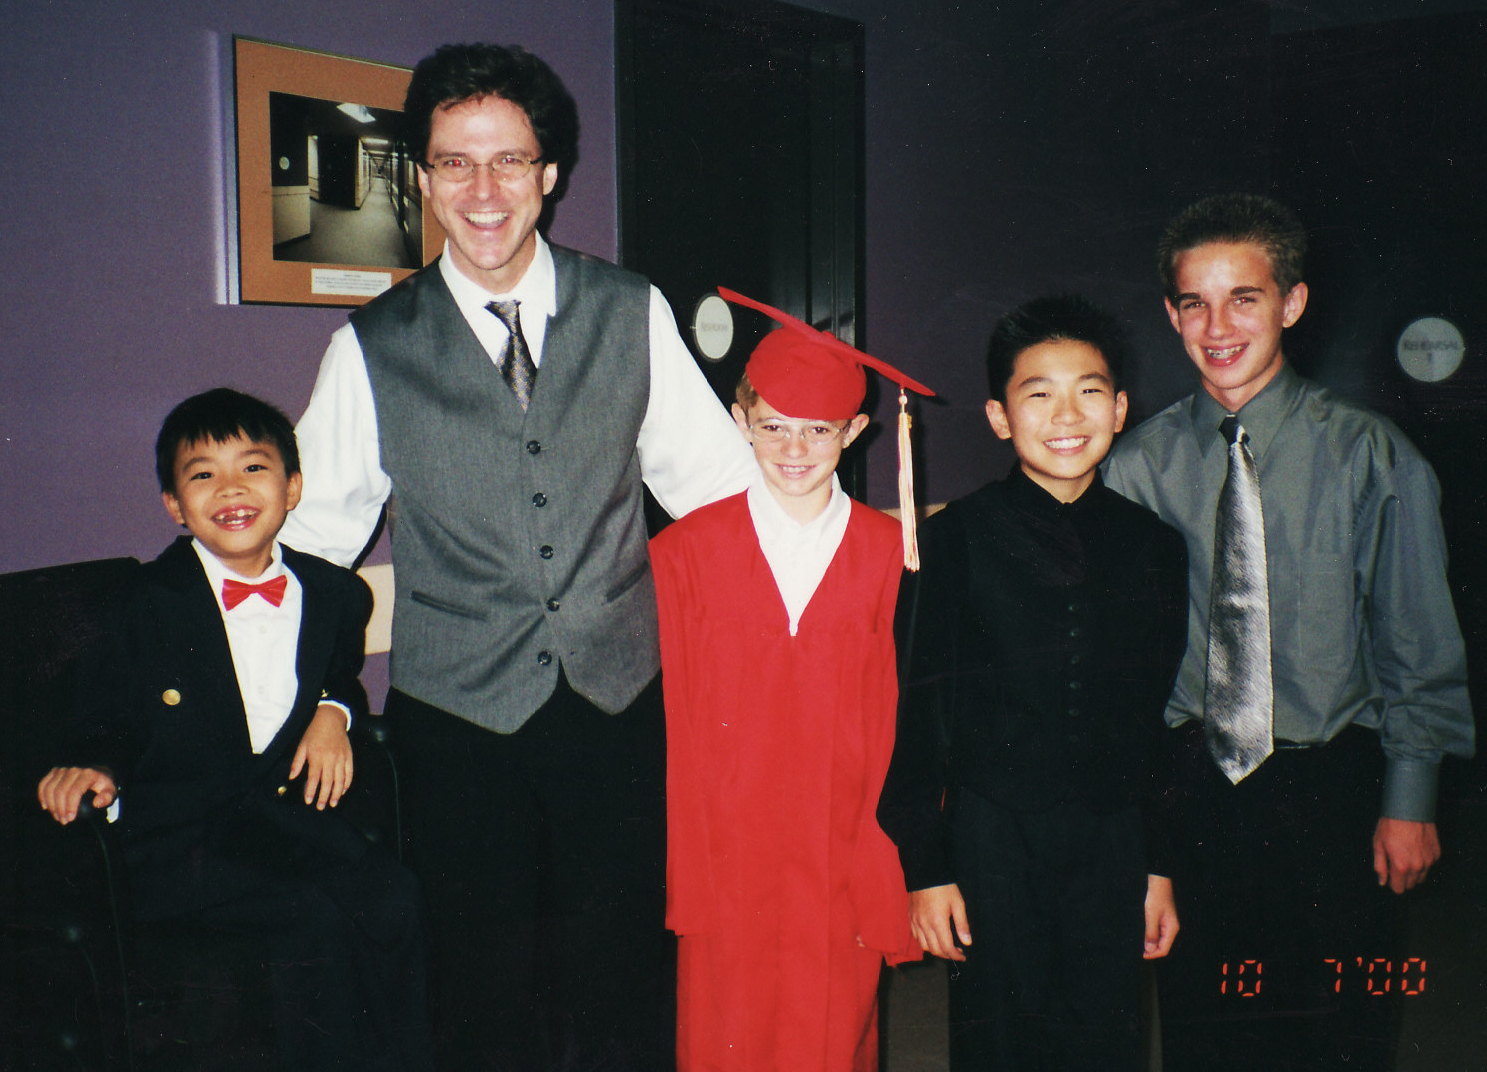 Family Concerts - with Kit Armstrong, Sebastian Chang and two other young gentlemen.